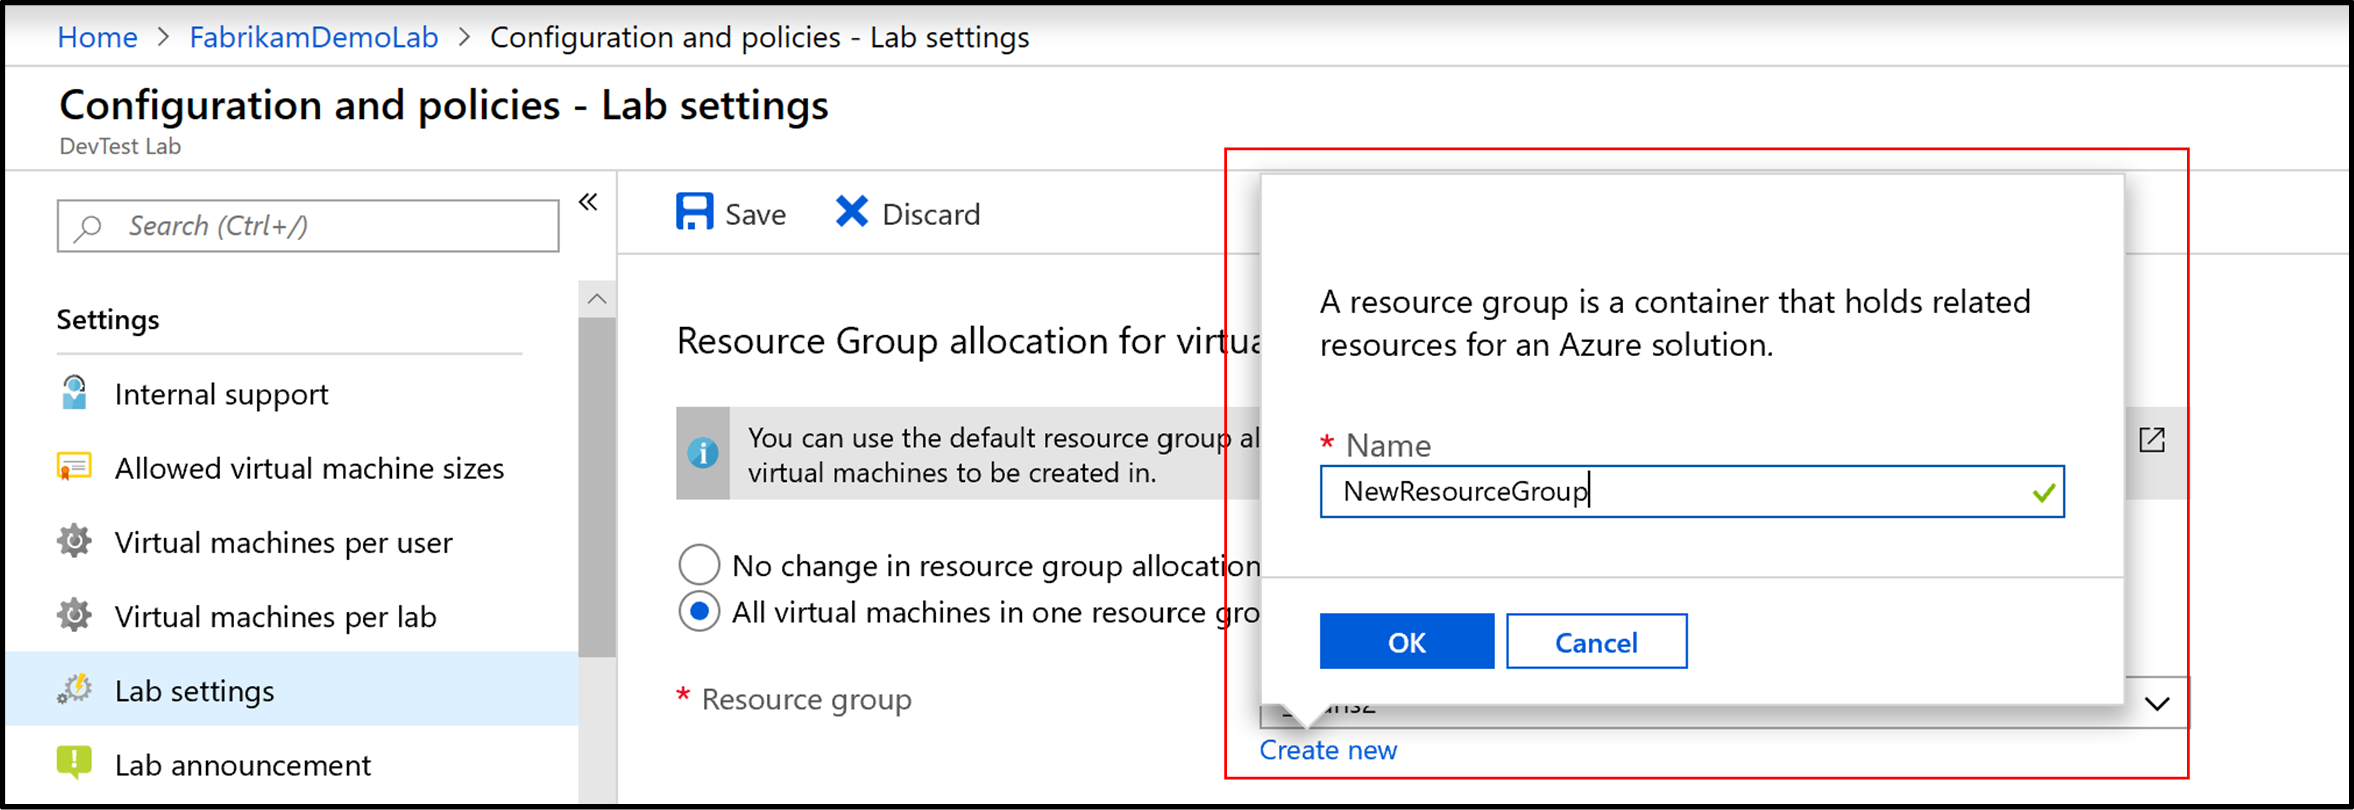 Screenshot of entering a new resource group